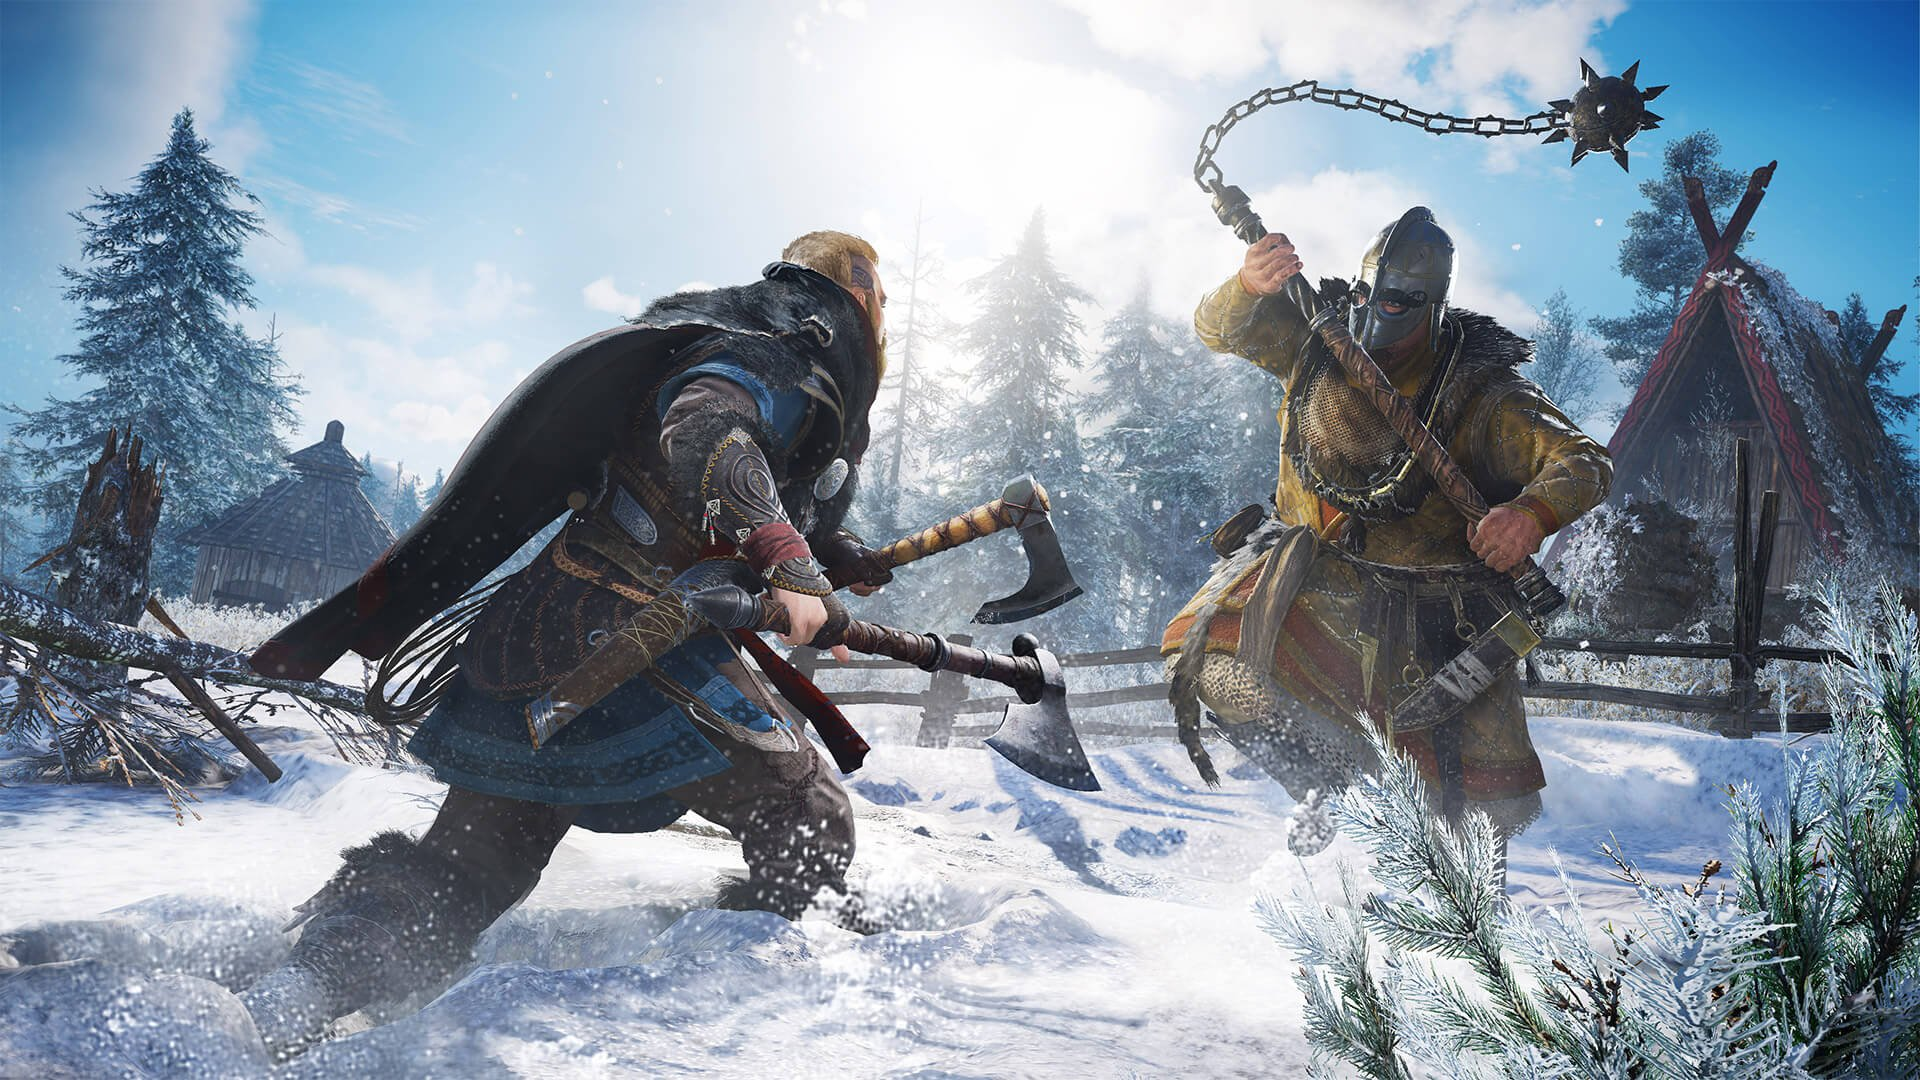 Screenshot for the game Assassin's Creed Valhalla